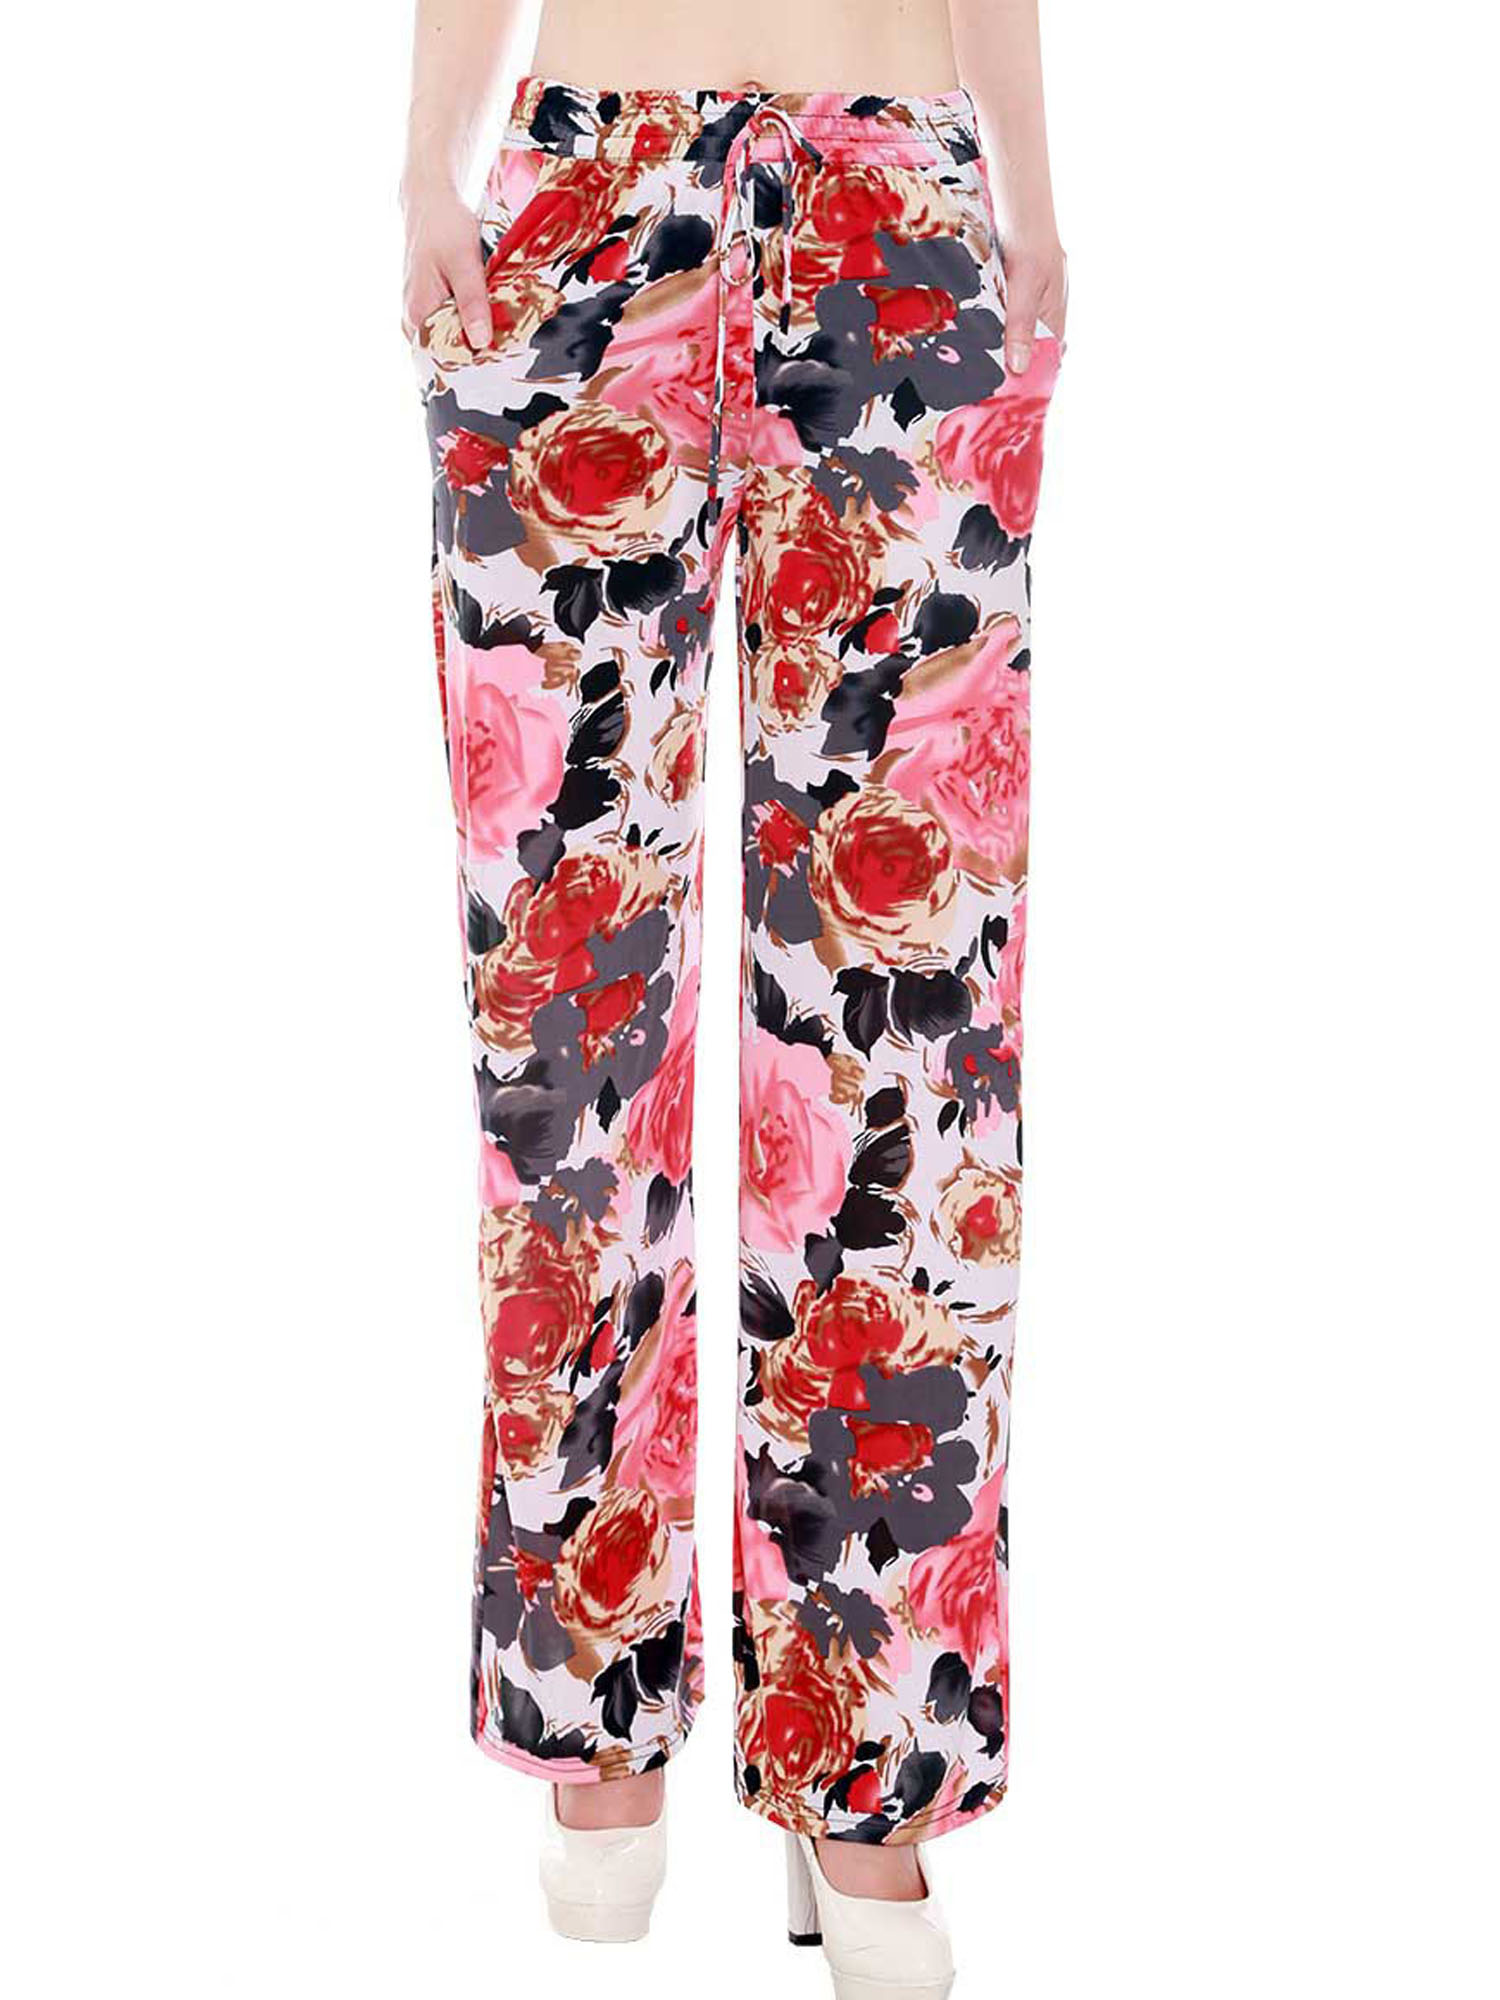 Juniors Palazzo Style Pants in All over Floral Pattern, M/L